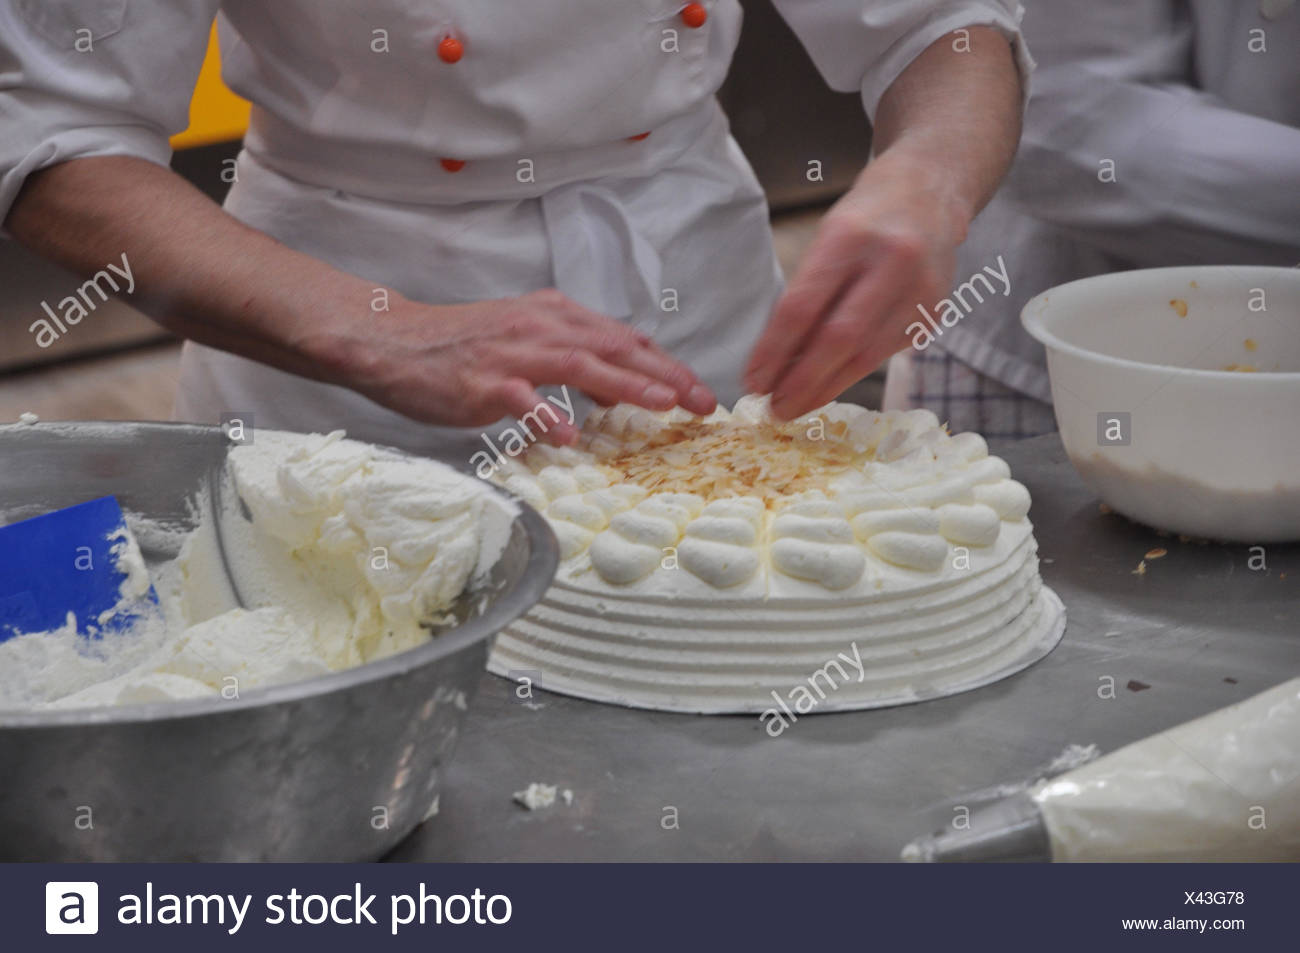 Occupation, confectioner, hands, cake, decorate, - Stock Image